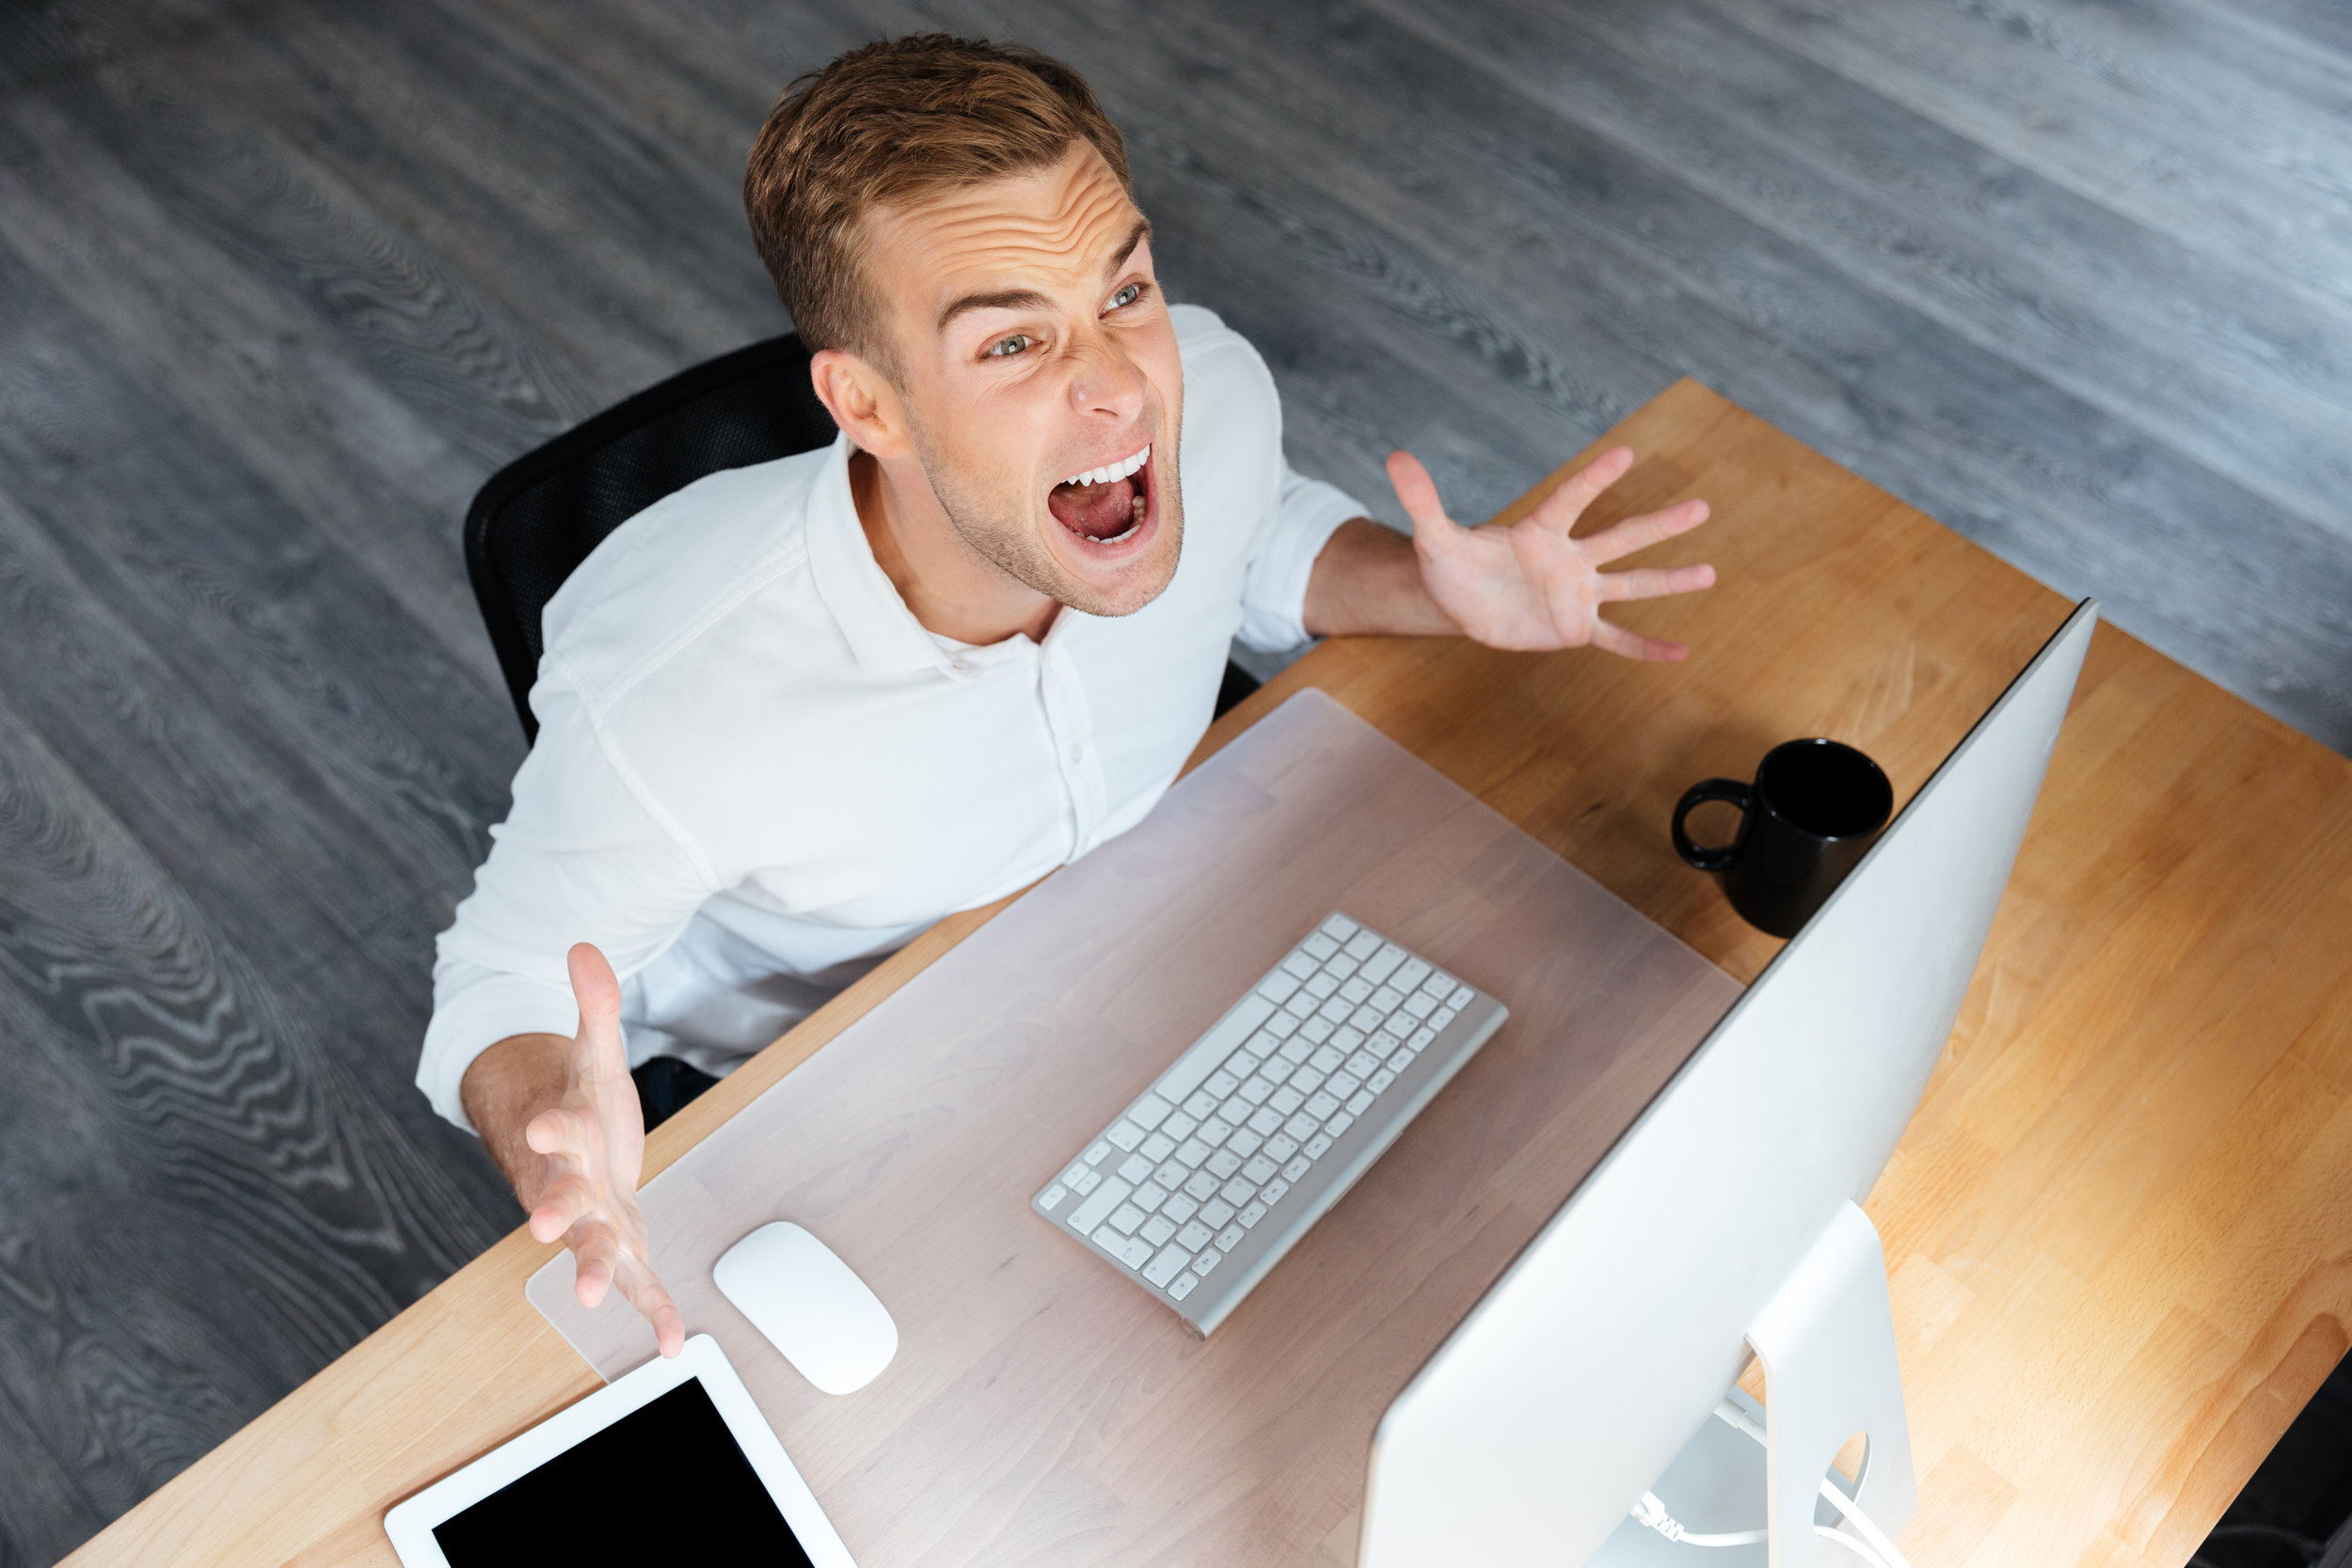 graphicstock-top-view-of-mad-young-businessman-working-with-computer-and-shouting_BdWx2ofB2e.jpg